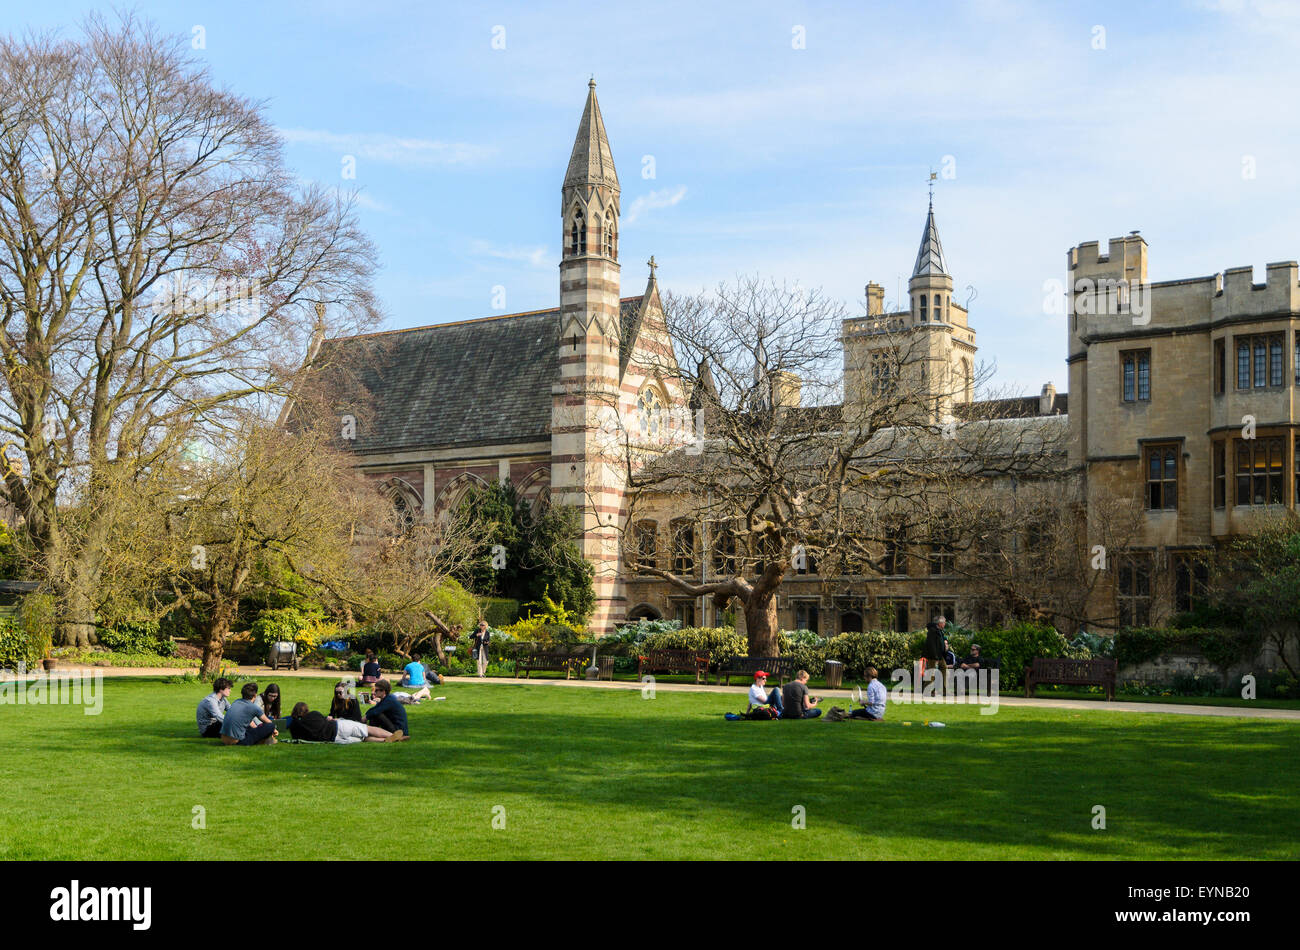 Students relaxing in the Garden Quadrangle, Balliol College, University of Oxford, Oxford, England, UK. - Stock Image